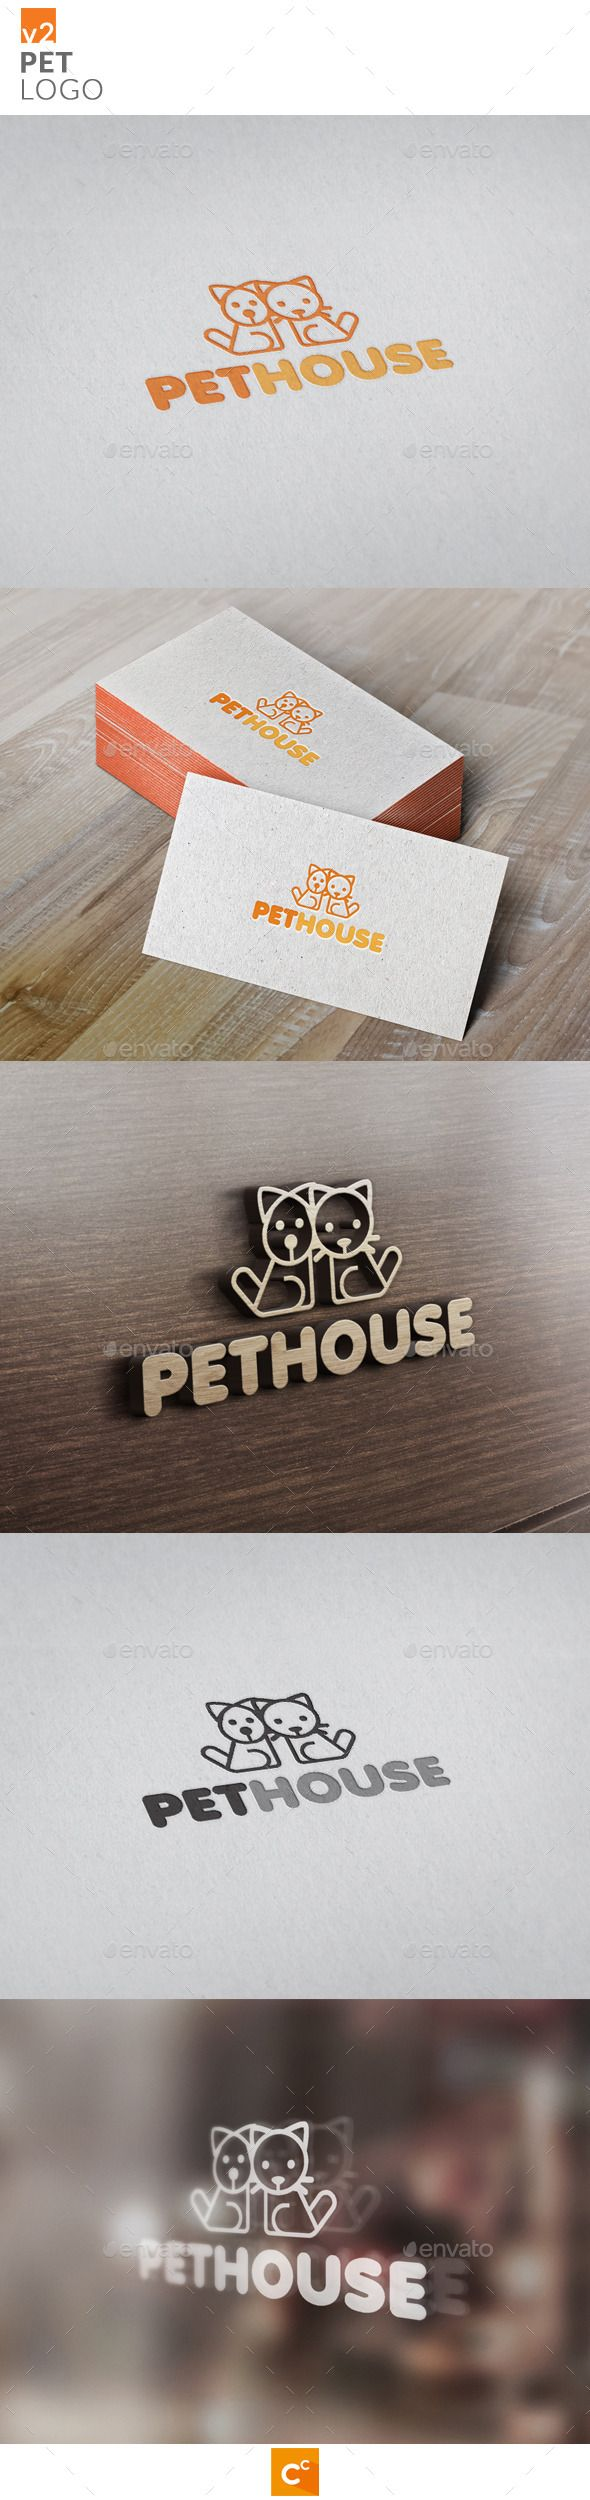 203 best business card images on Pinterest | Business cards, Carte ...